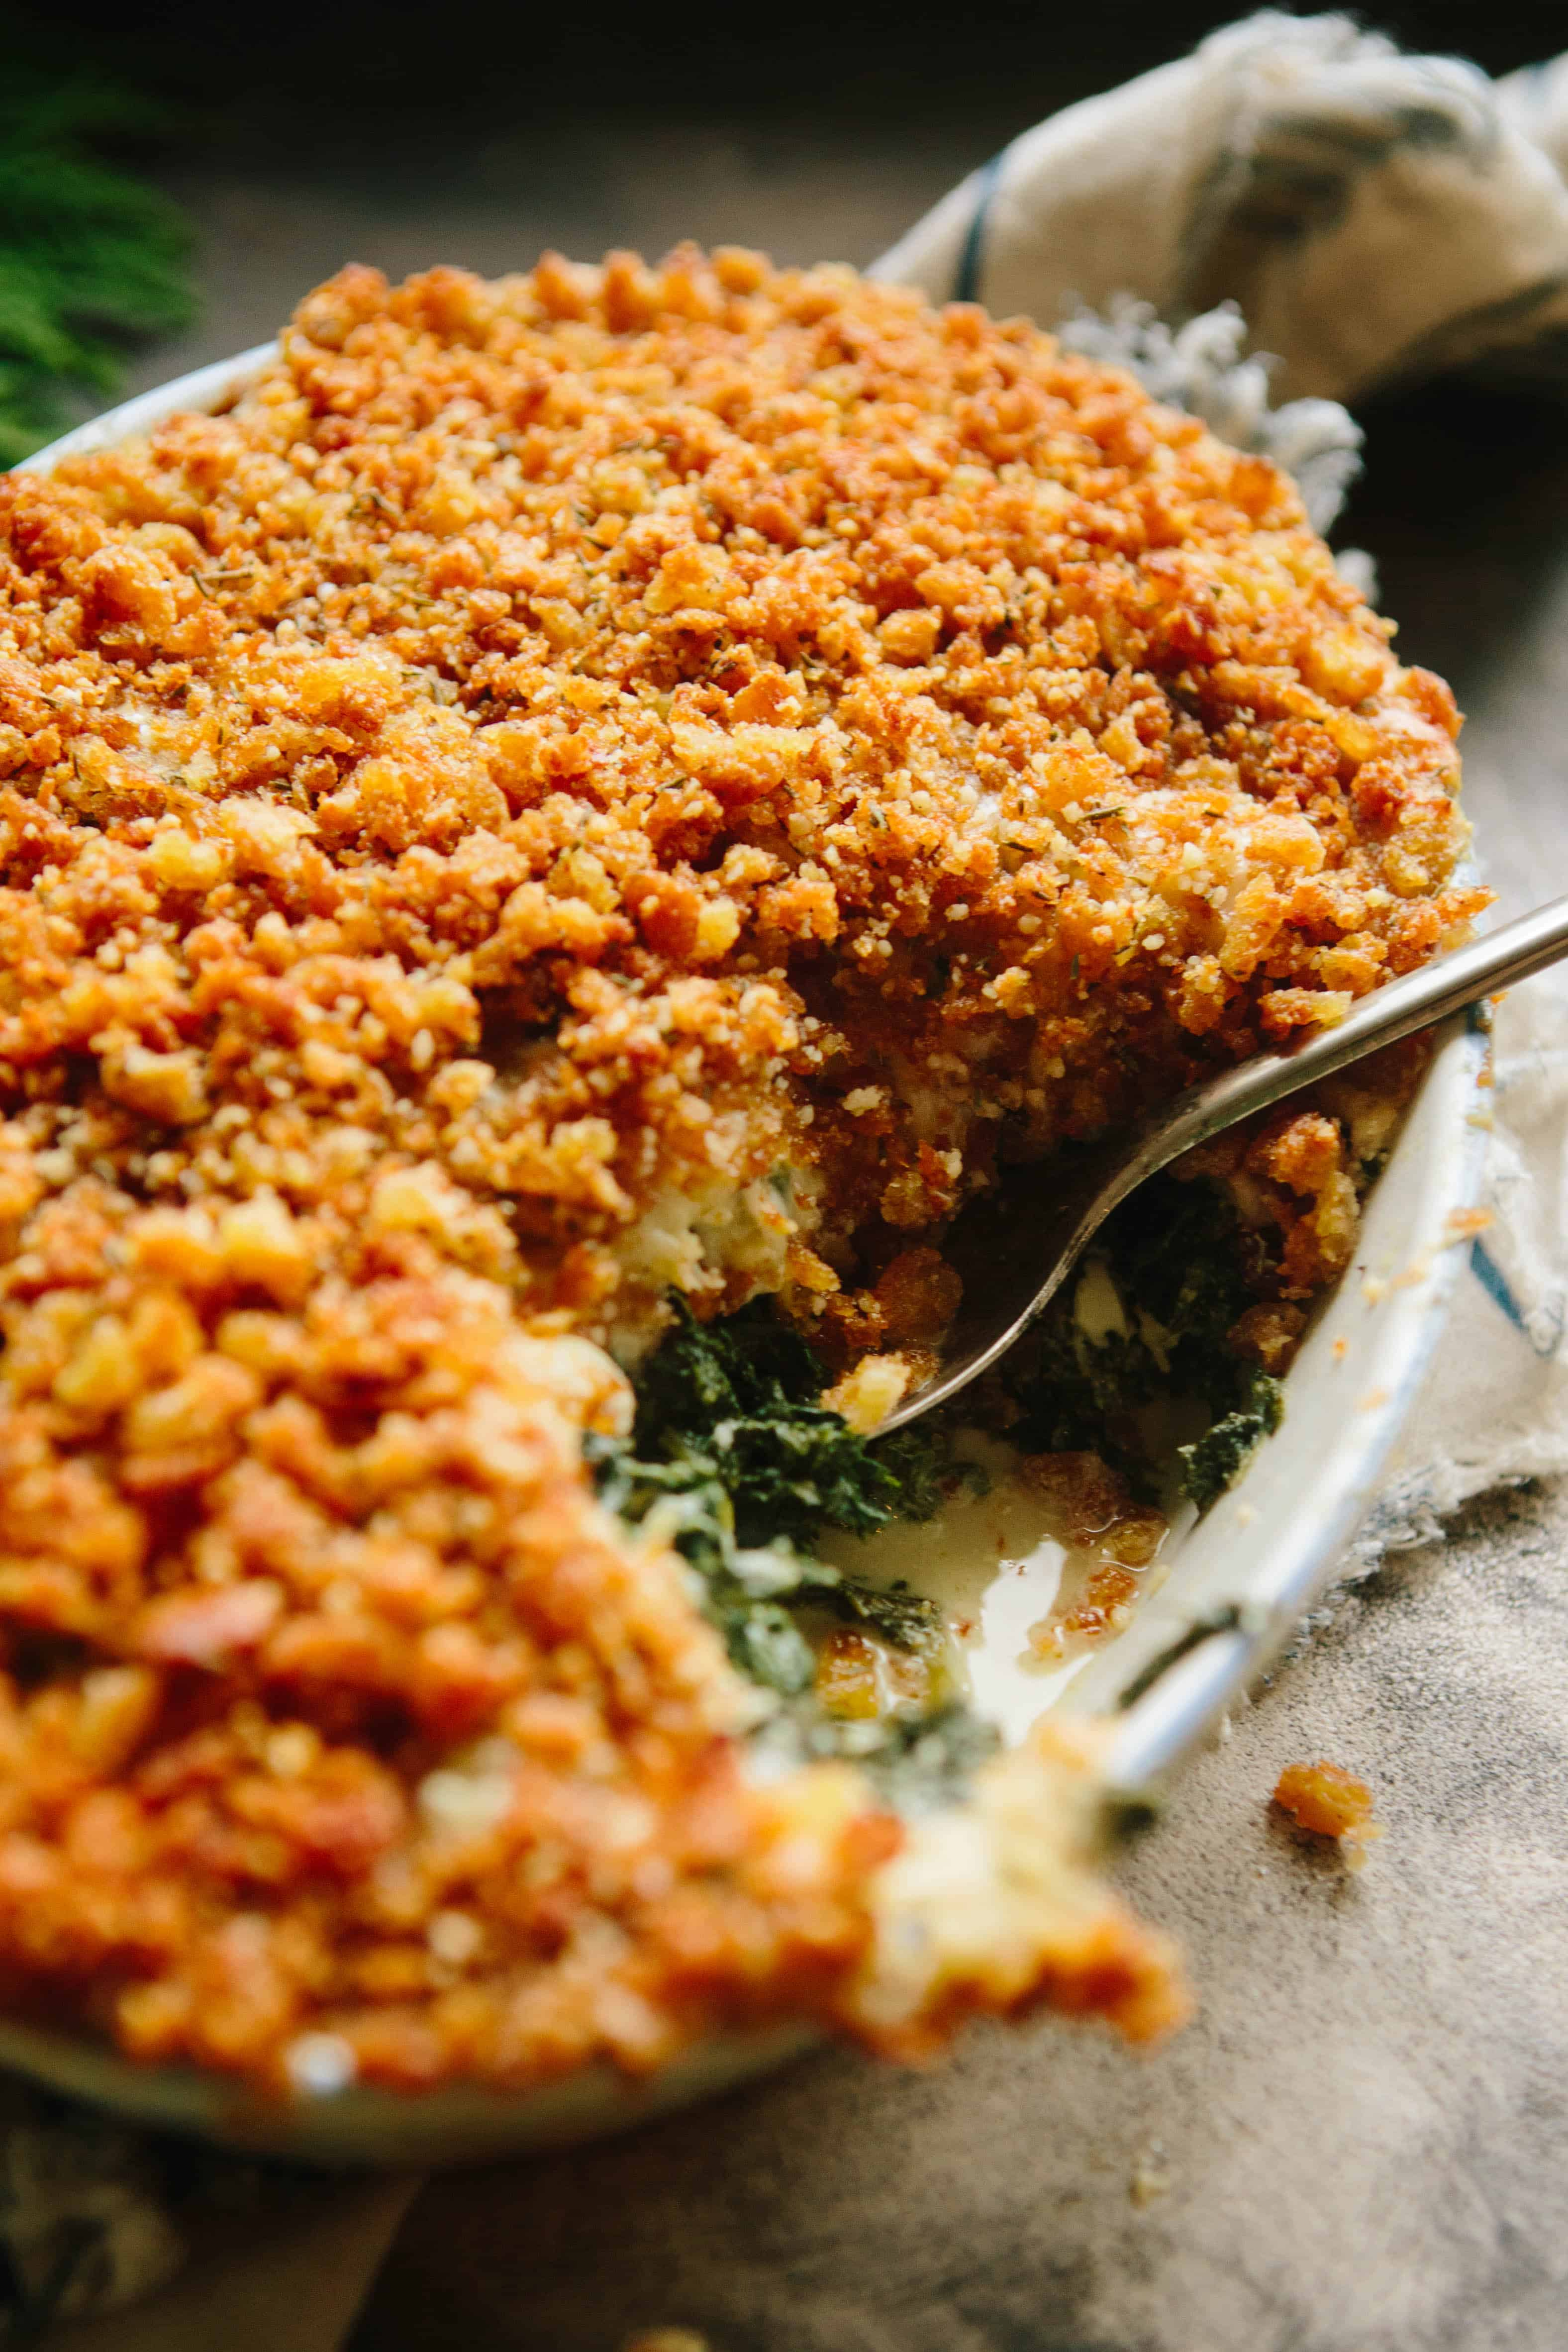 A casserole dish of kale gratin with a serving spoon, missing one serving.